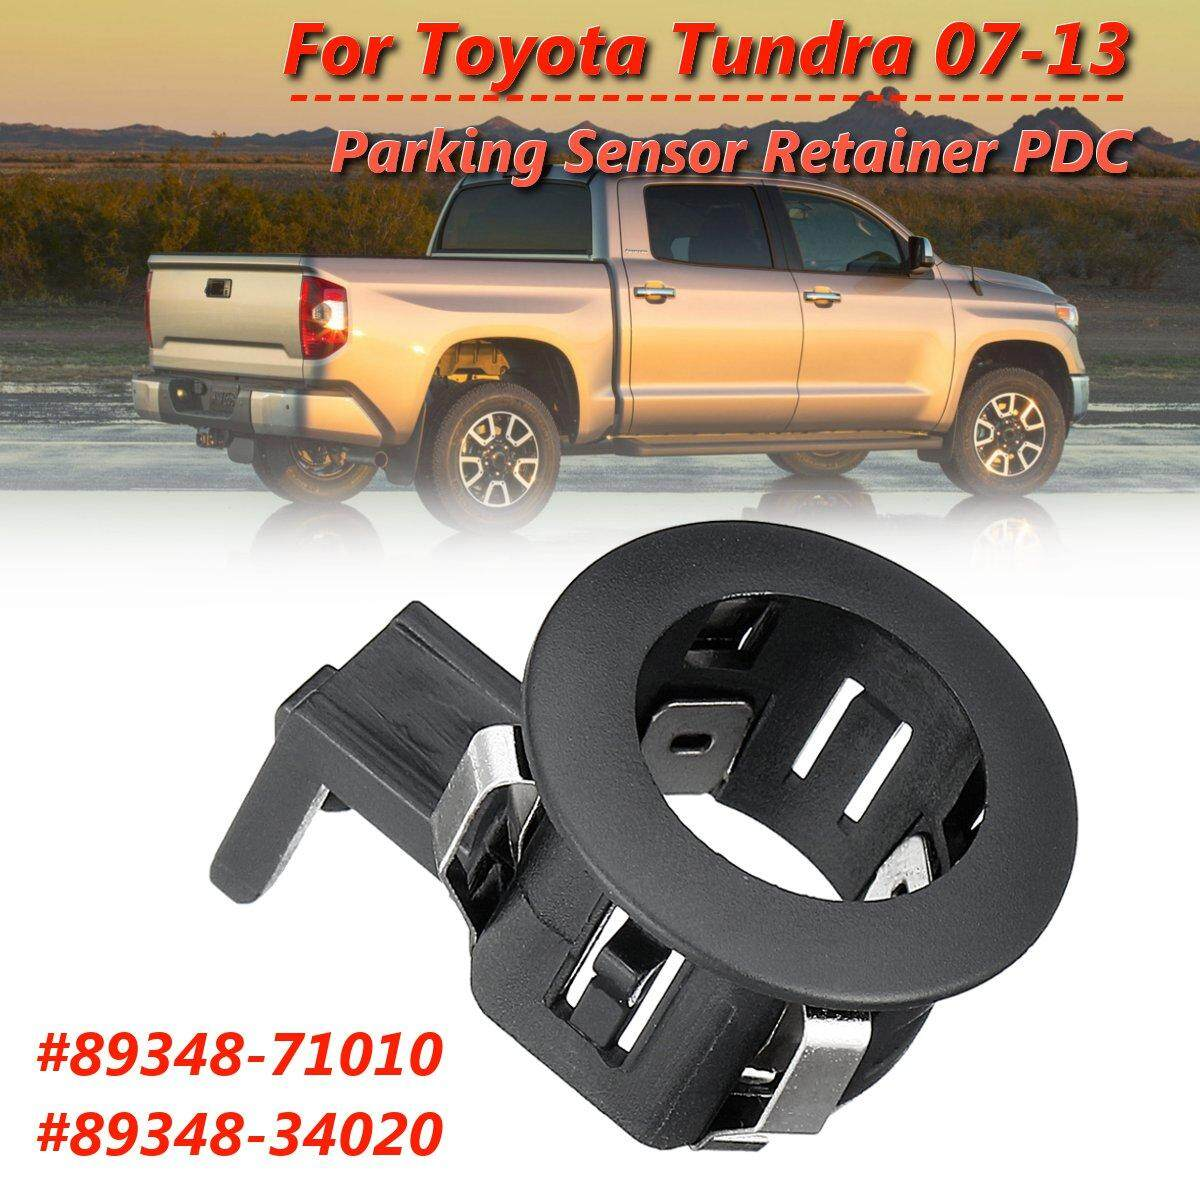 【Free Shipping + Flash Deal】Parking Sensor Retainer PDC For Toyota Tundra  2007-2013 #89348-71010 89348-34020